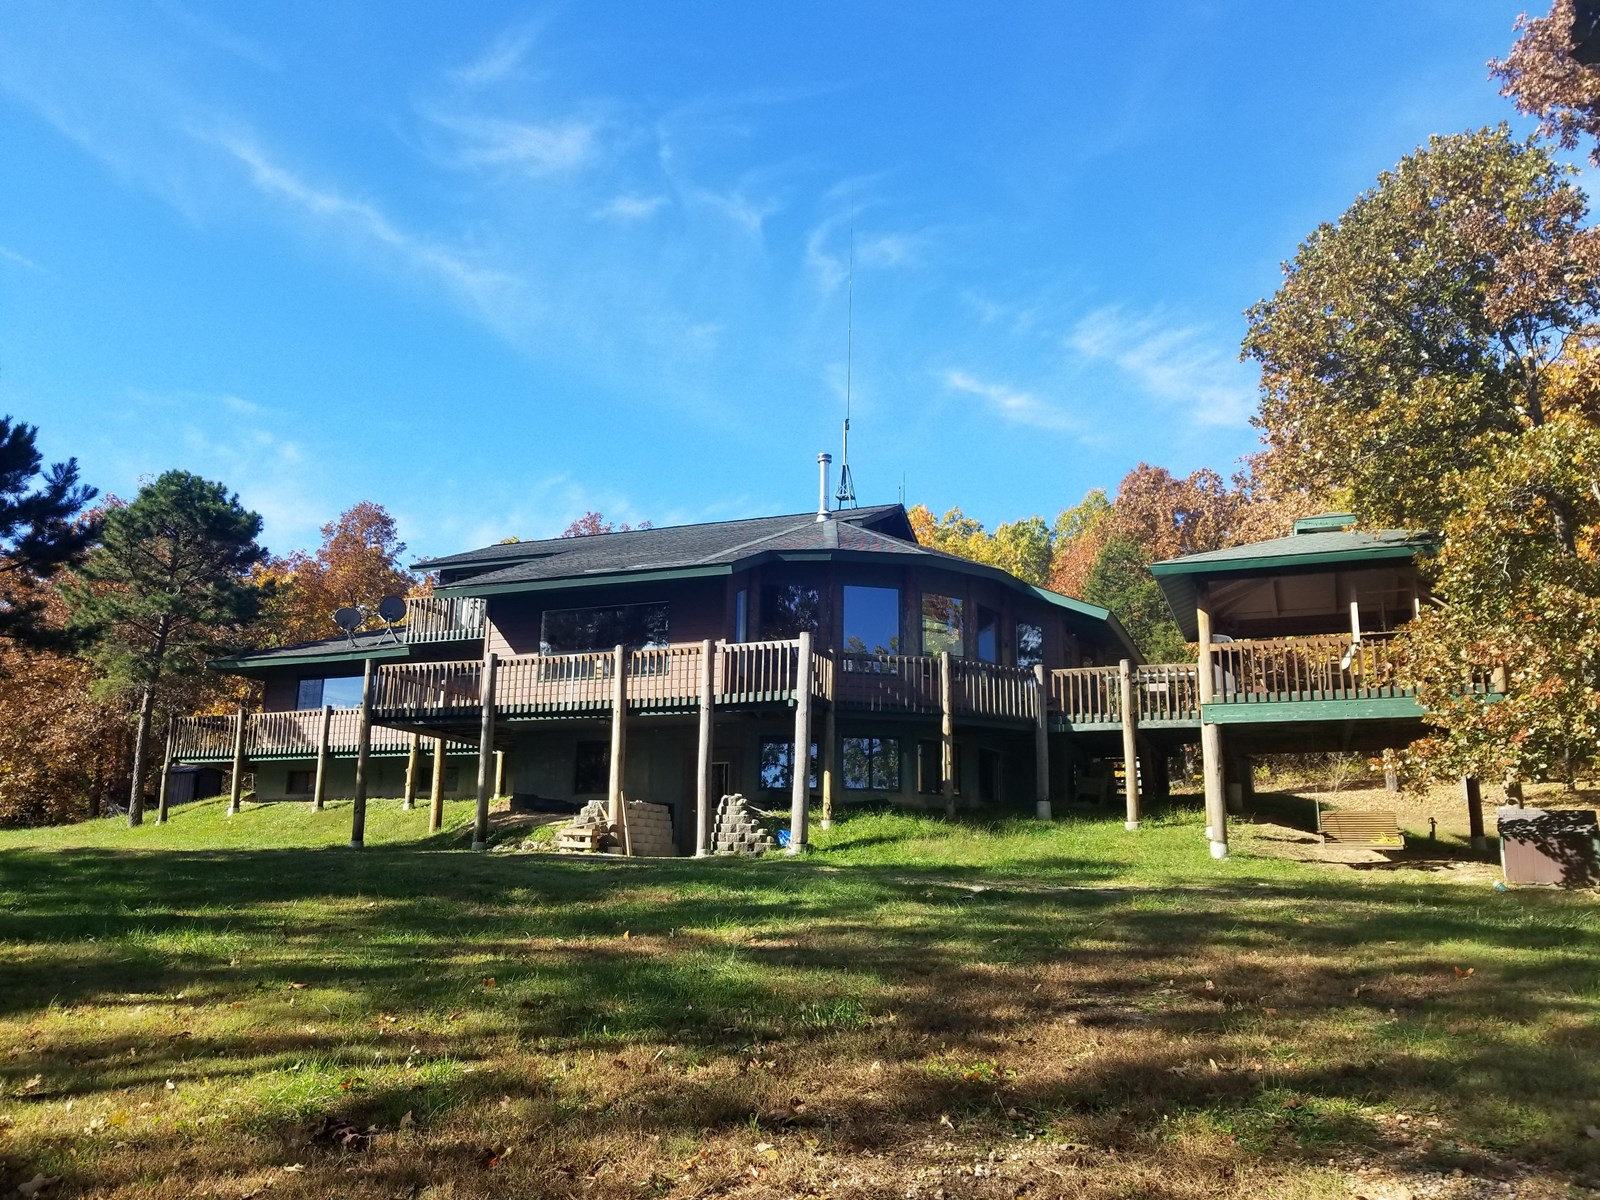 Private Lodge-Style Home, Retreat, or Farm Missouri Ozarks